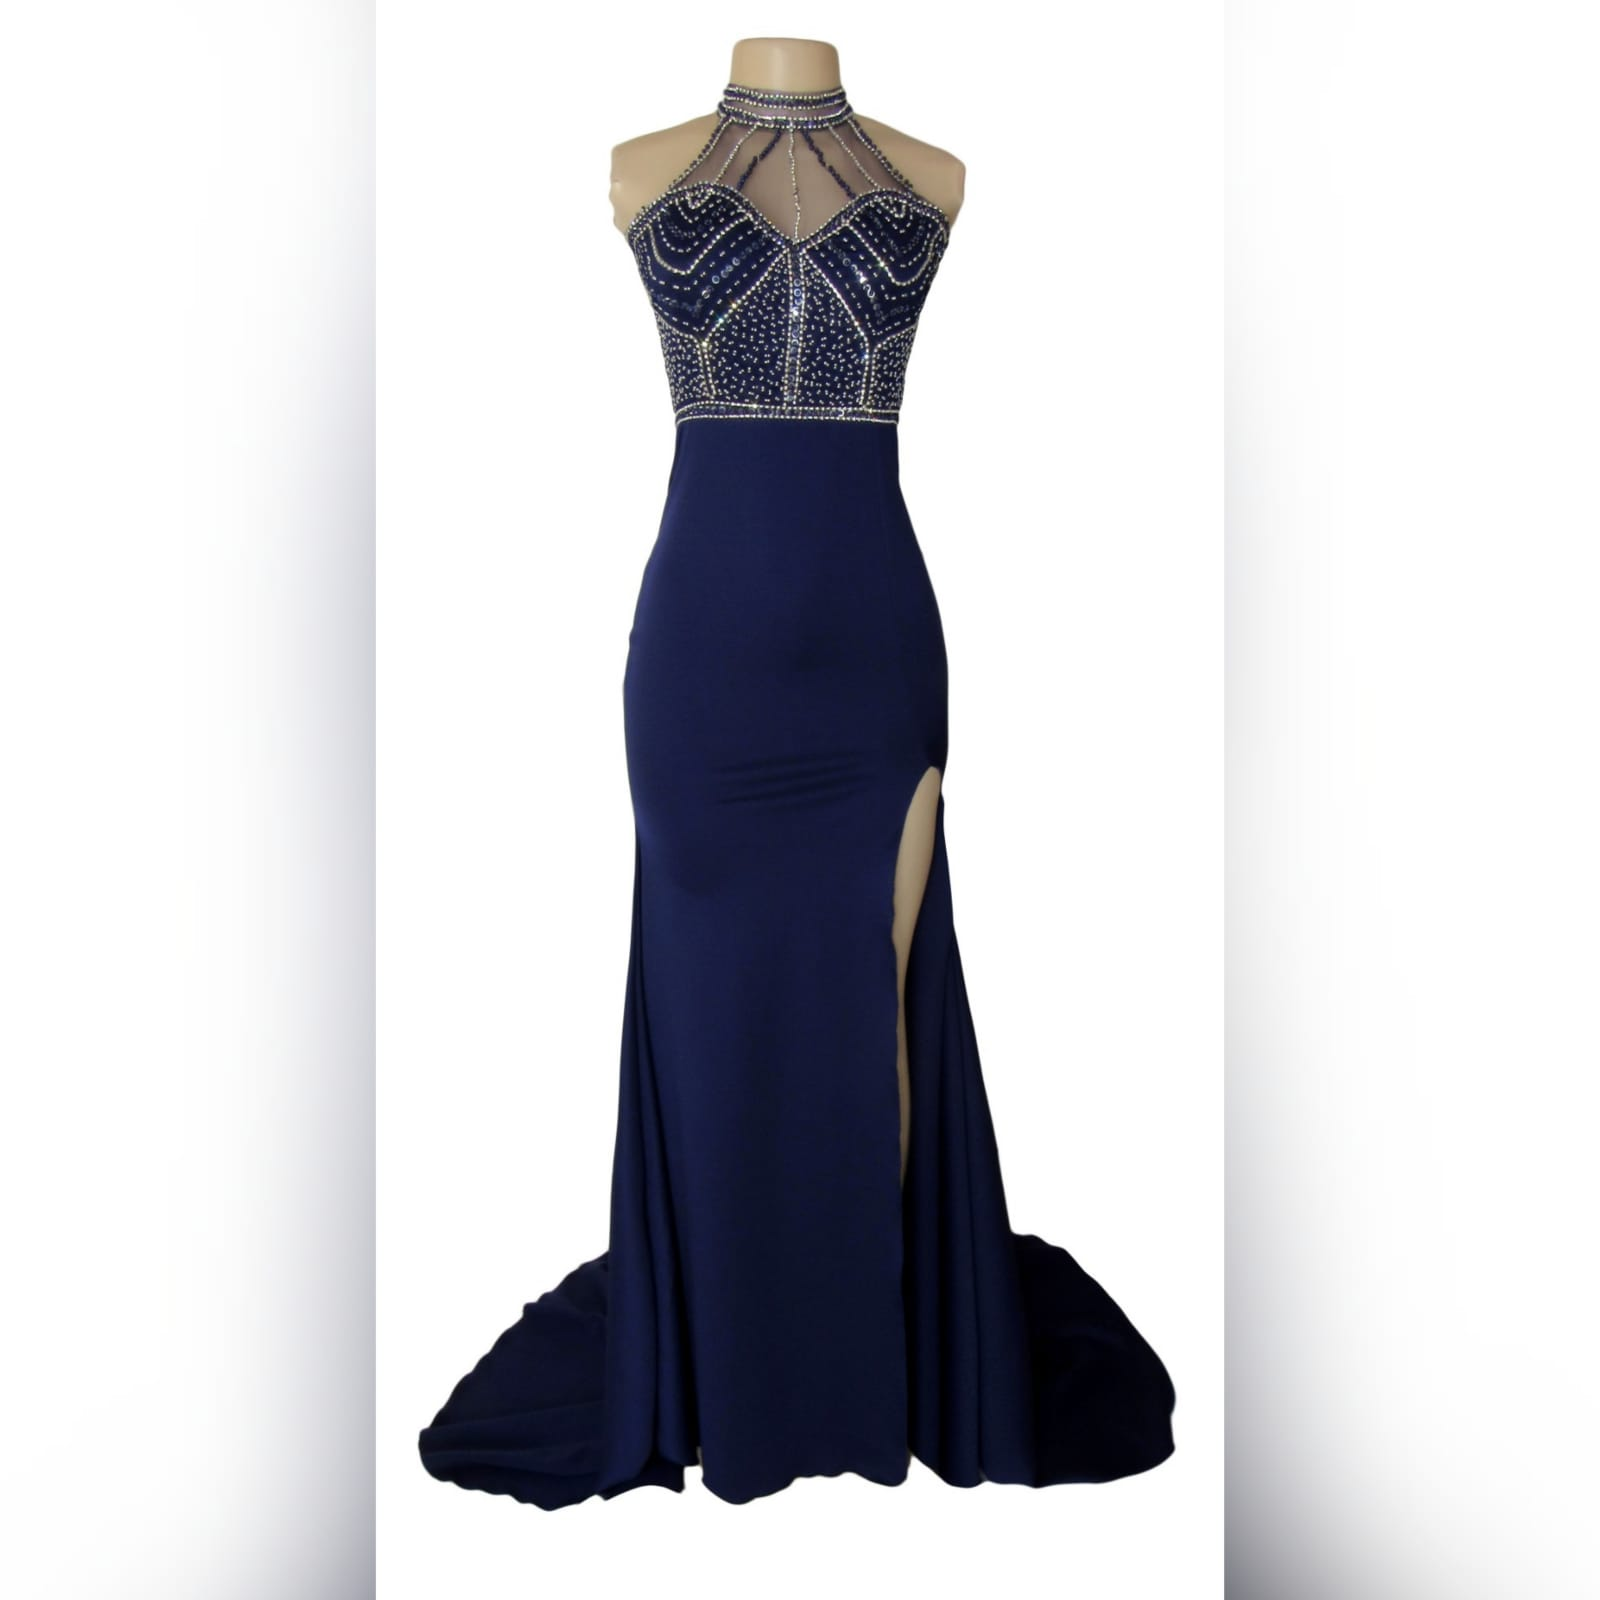 Navy blue silver beaded prom dress 4 navy blue silver beaded prom dress with an illusion neckline and a choker effect. Backless design detailed with beaded straps. Fitted bottom with a slit and a train.